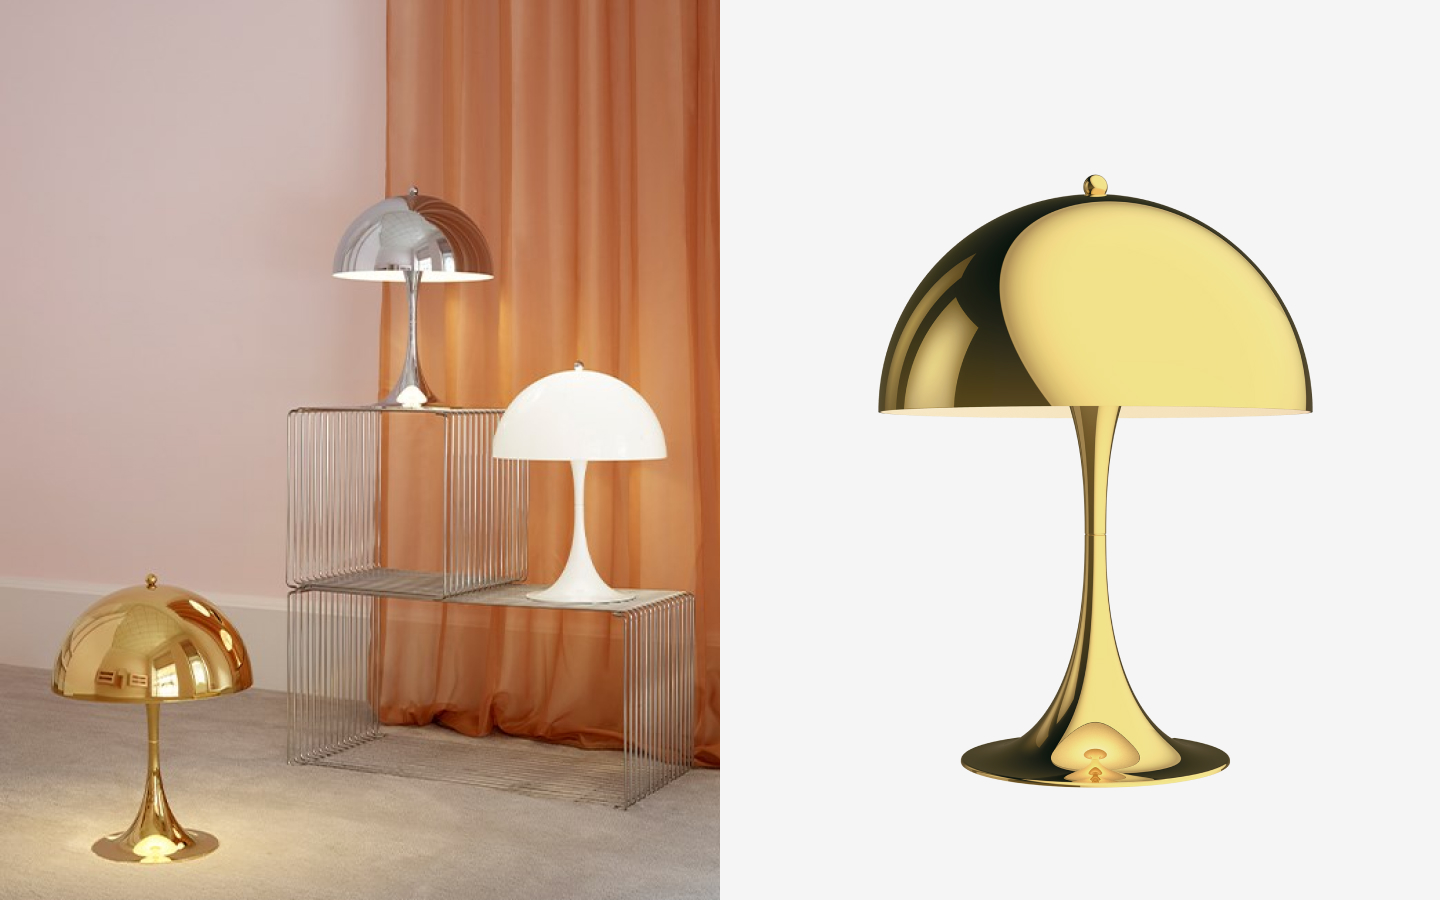 Mushroom-shape table lights in shiny silver, brass and white finishes